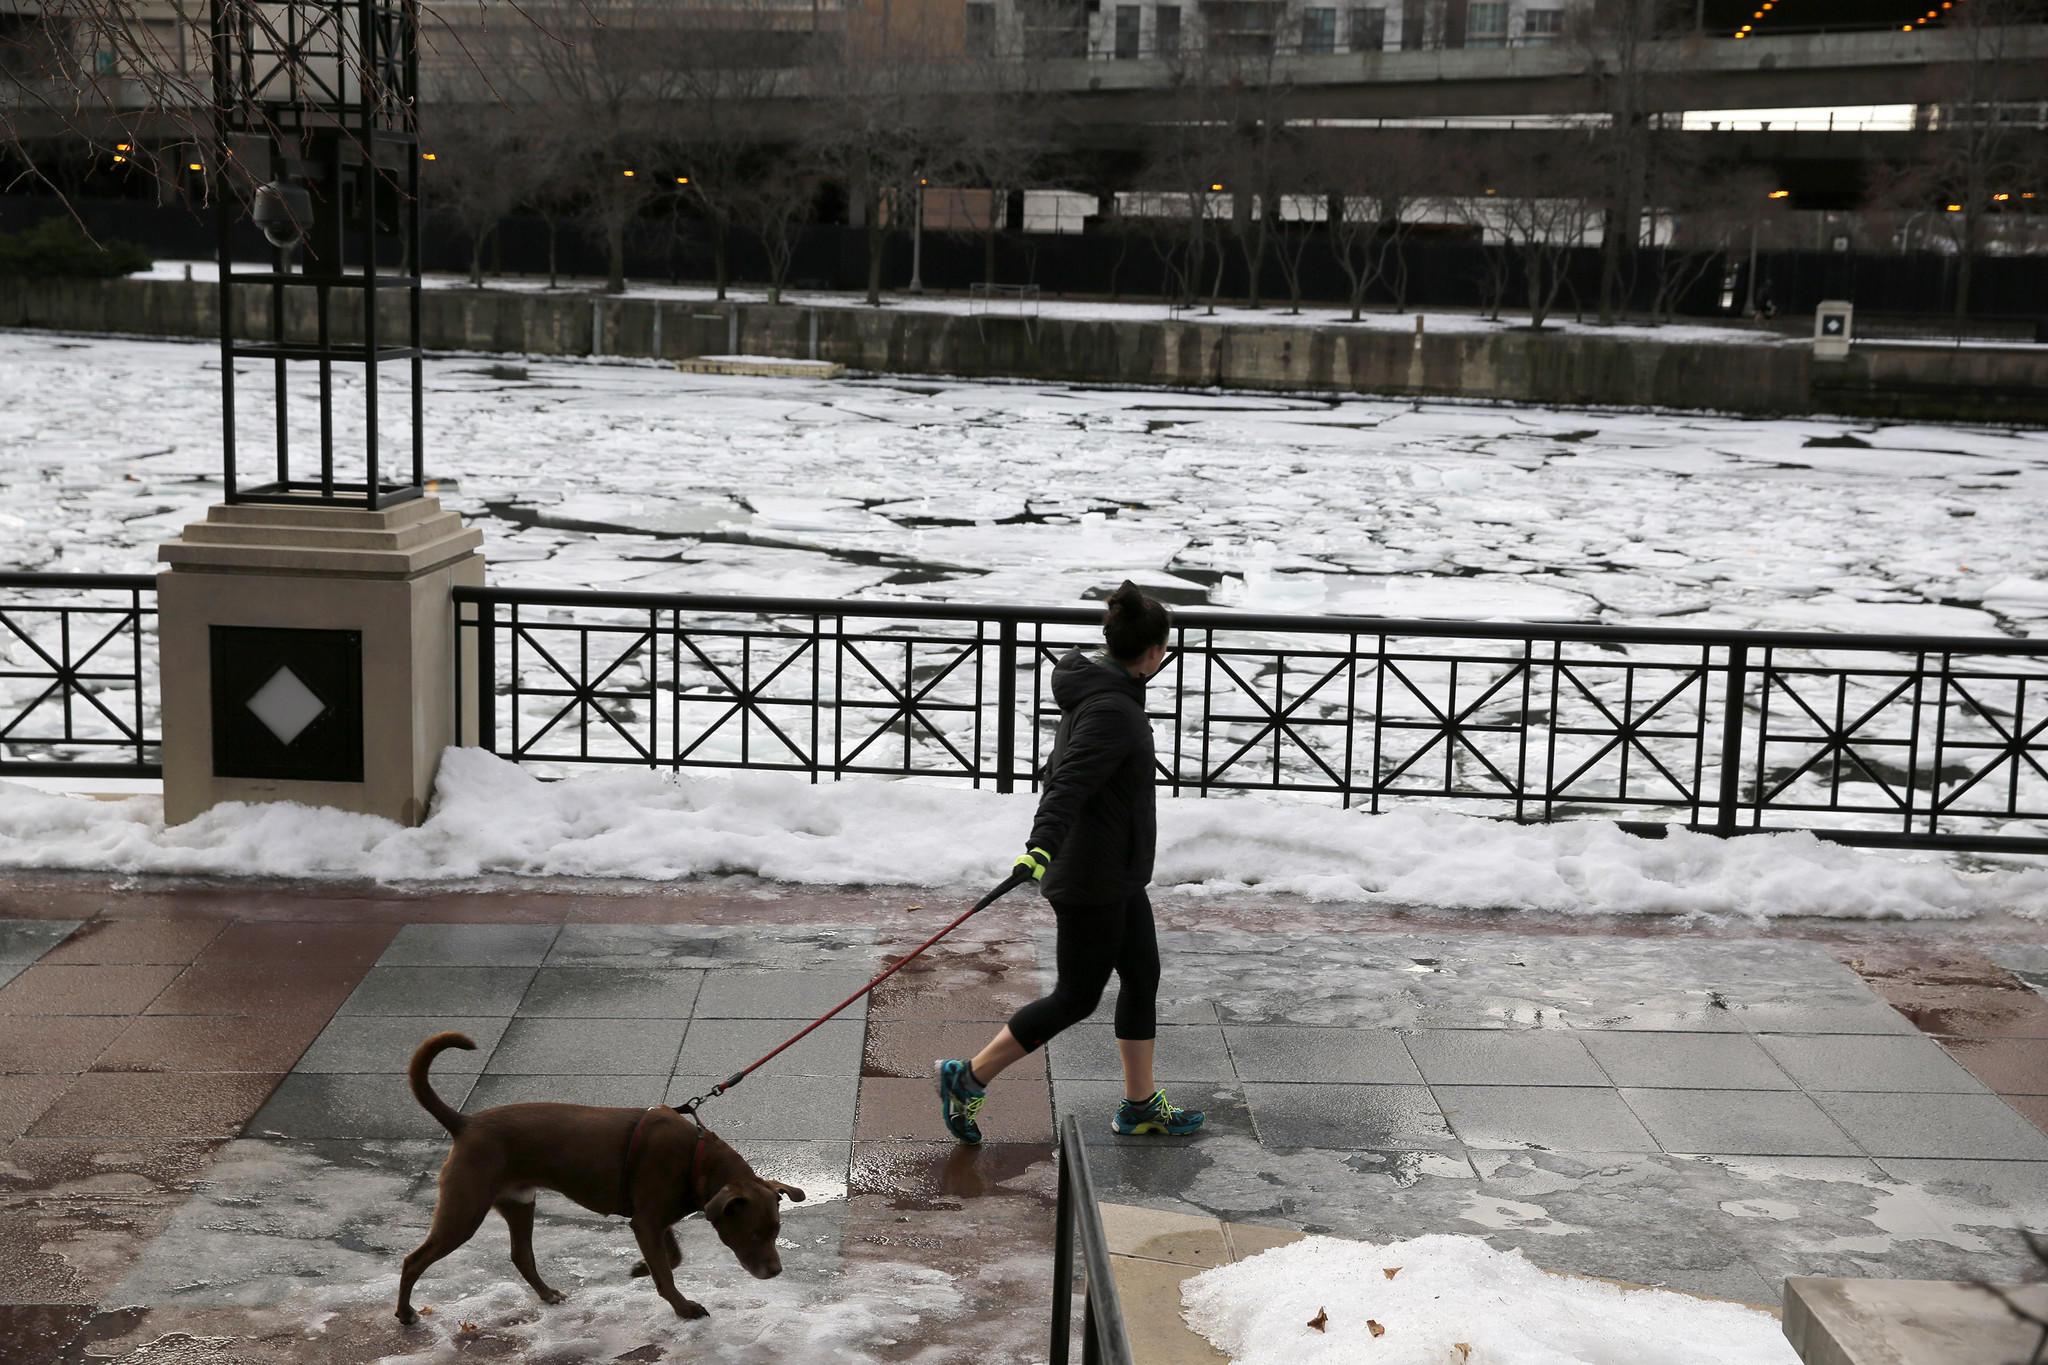 A woman walks a dog along the Chicago River near 429 E. North Water Street in Chicago on Jan. 13, 2014.